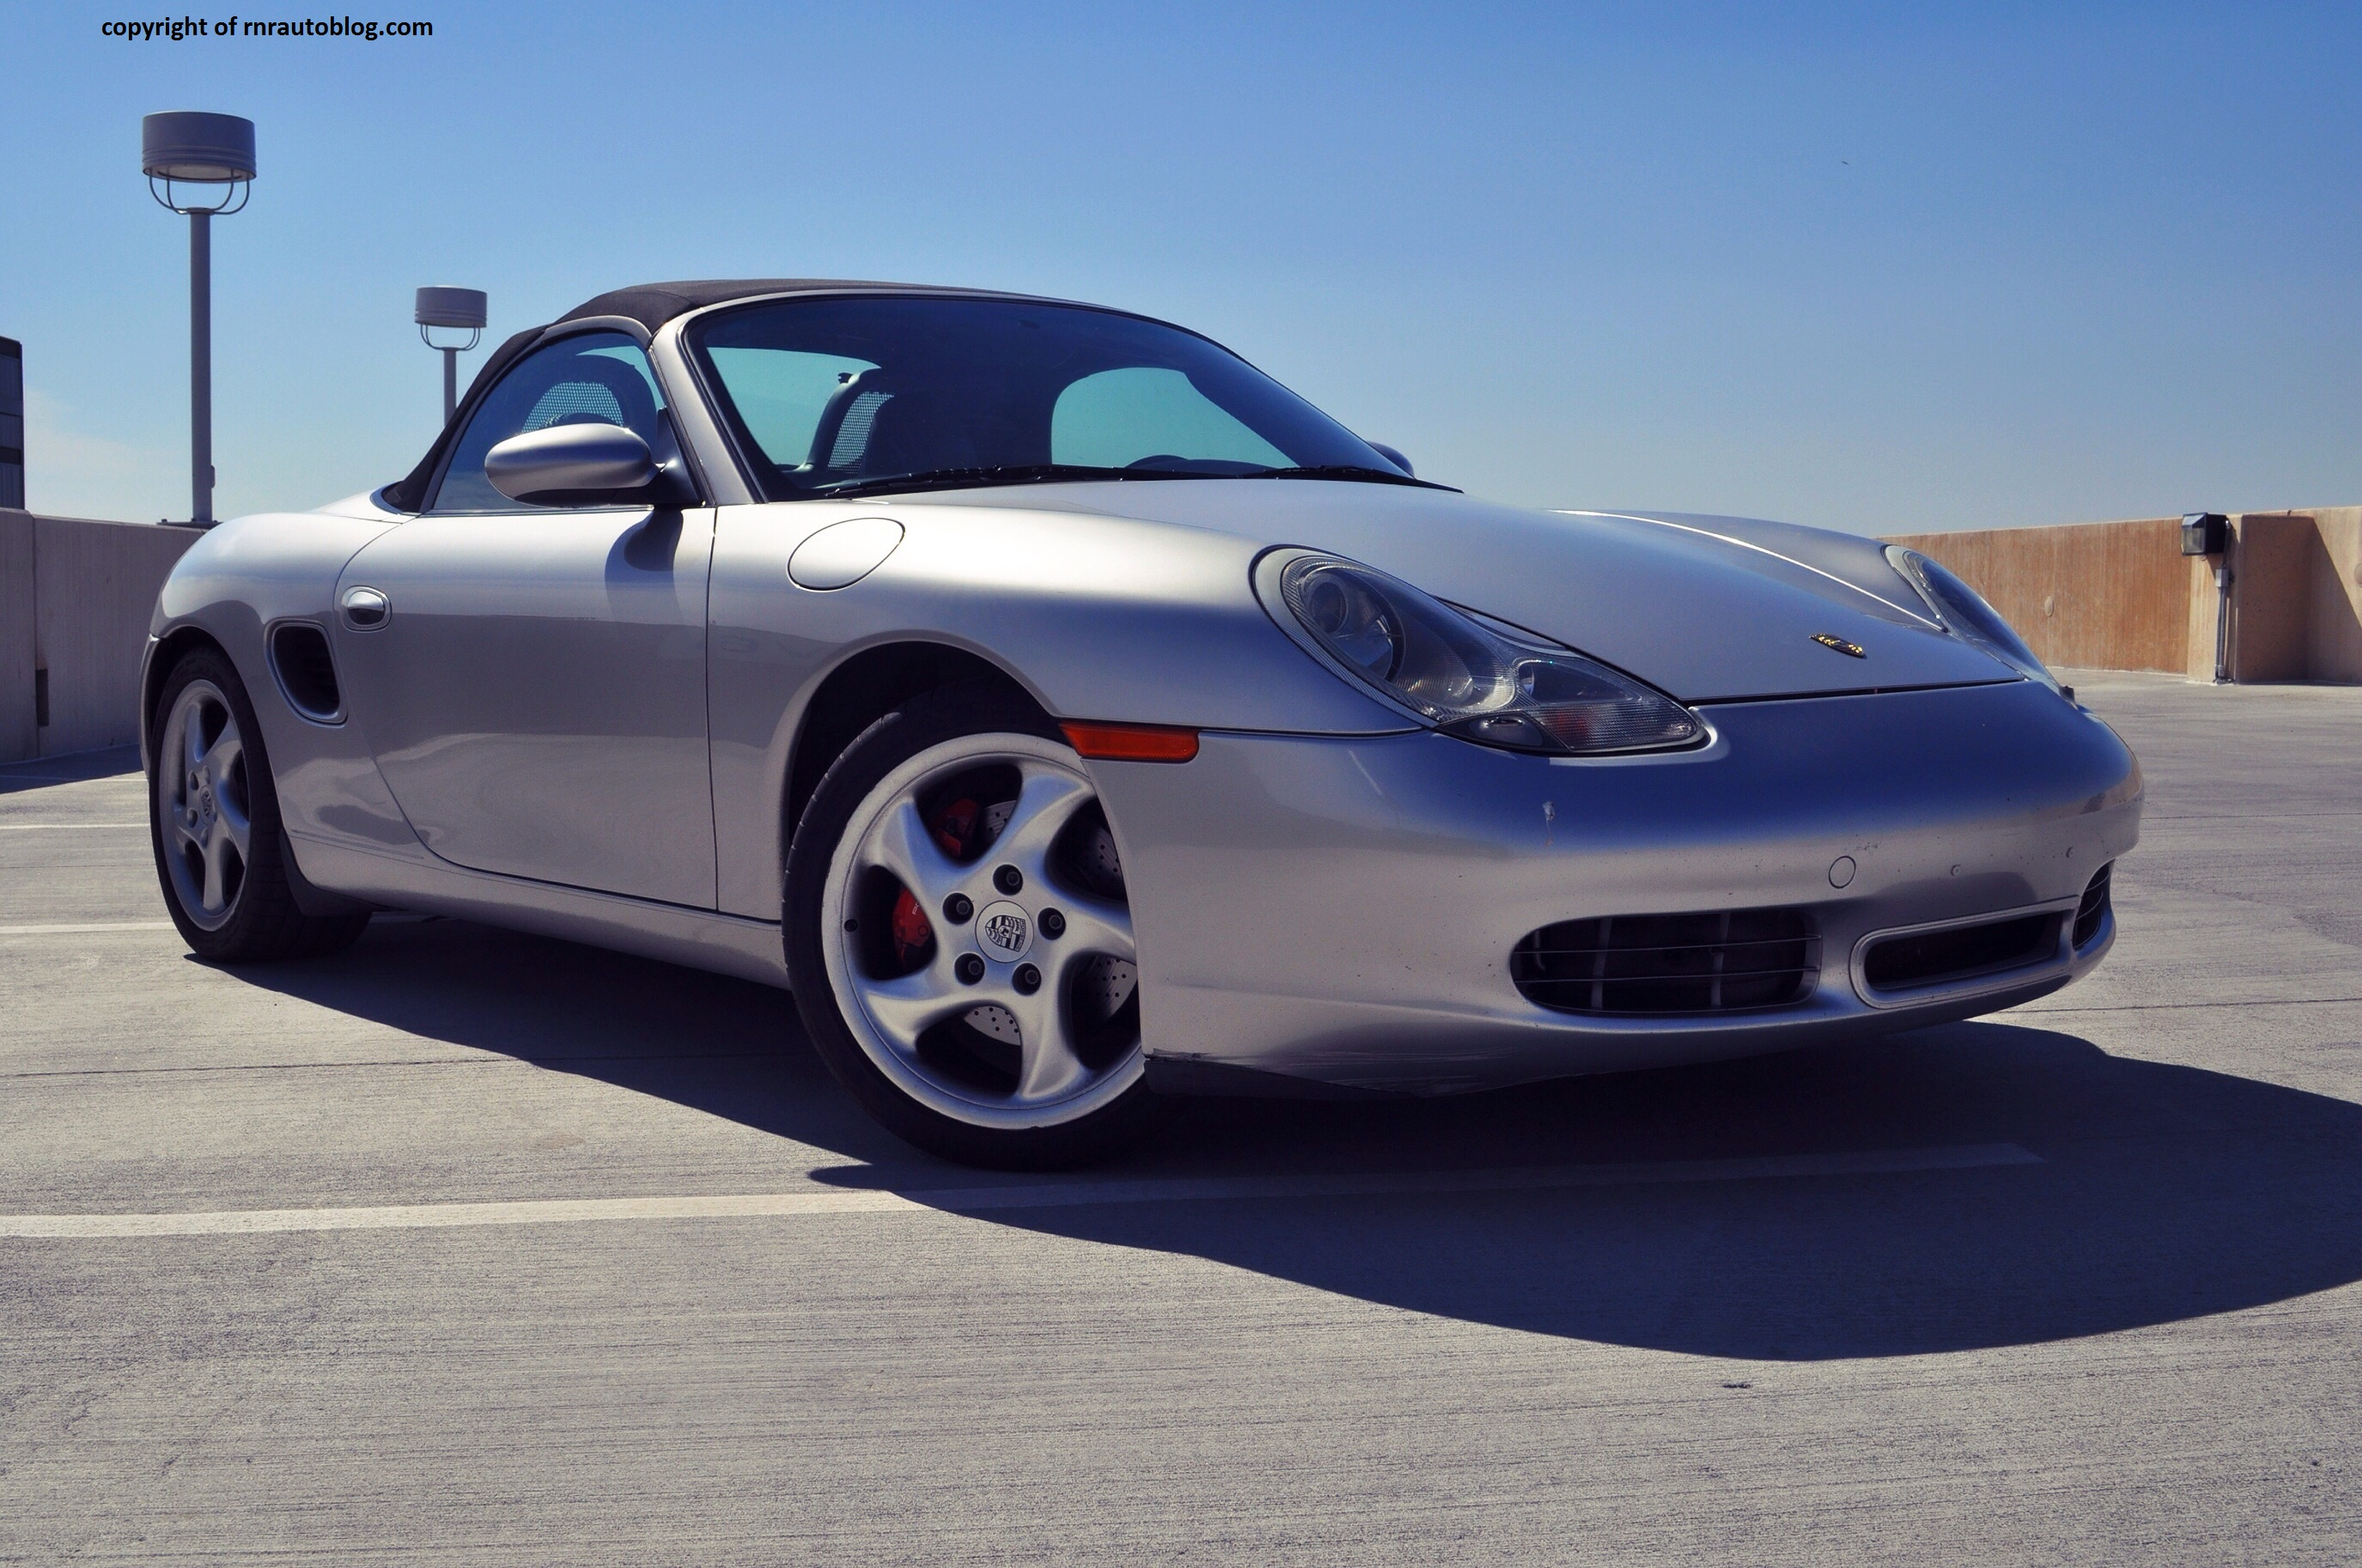 2001 porsche boxster s review rnr automotive blog. Black Bedroom Furniture Sets. Home Design Ideas